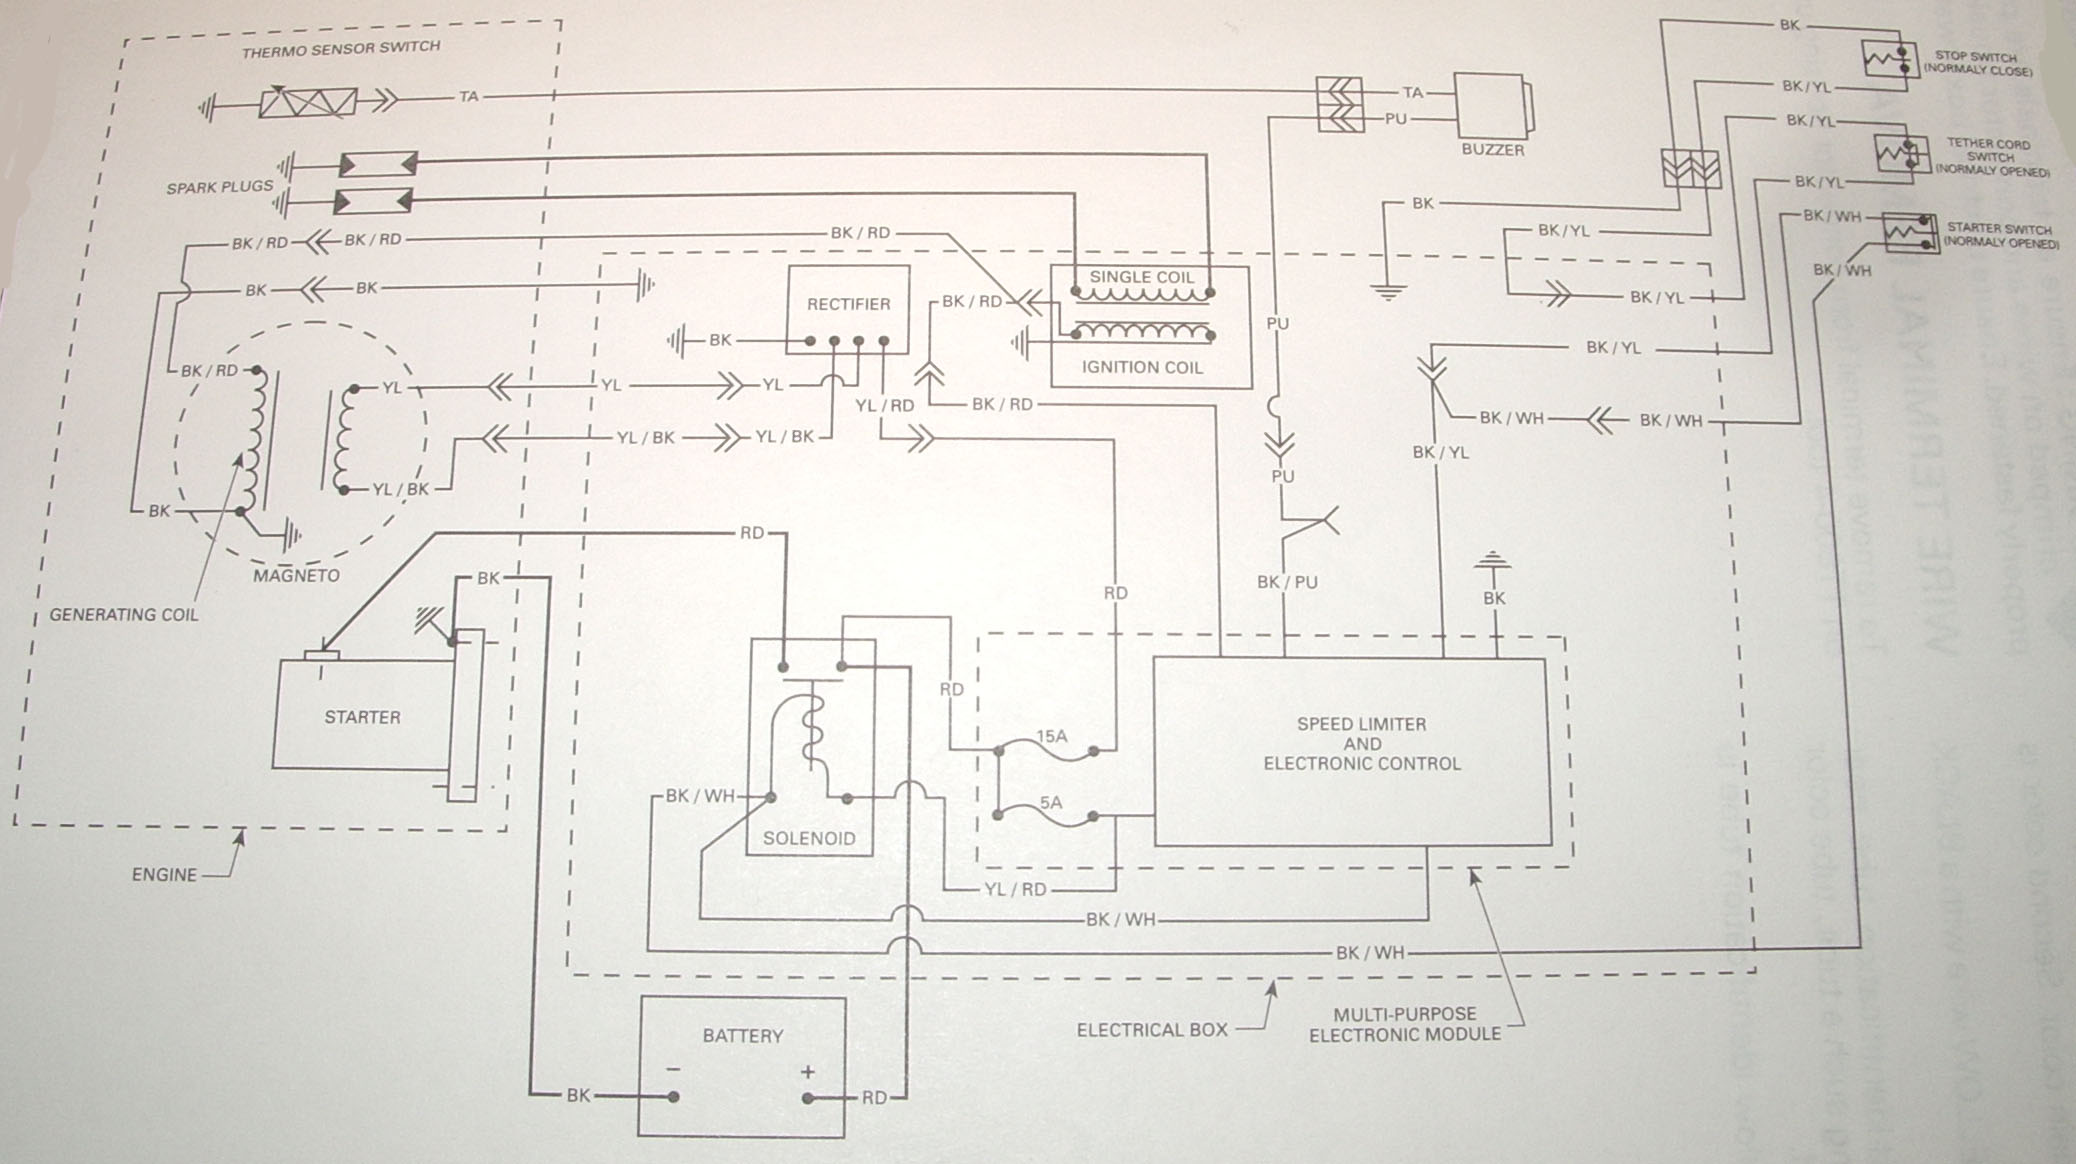 Yamaha Superjet Wiring Diagram Not Lossing Super Jet Data Rh 8 Hrc Solarhandel De Motorcycle Schematics